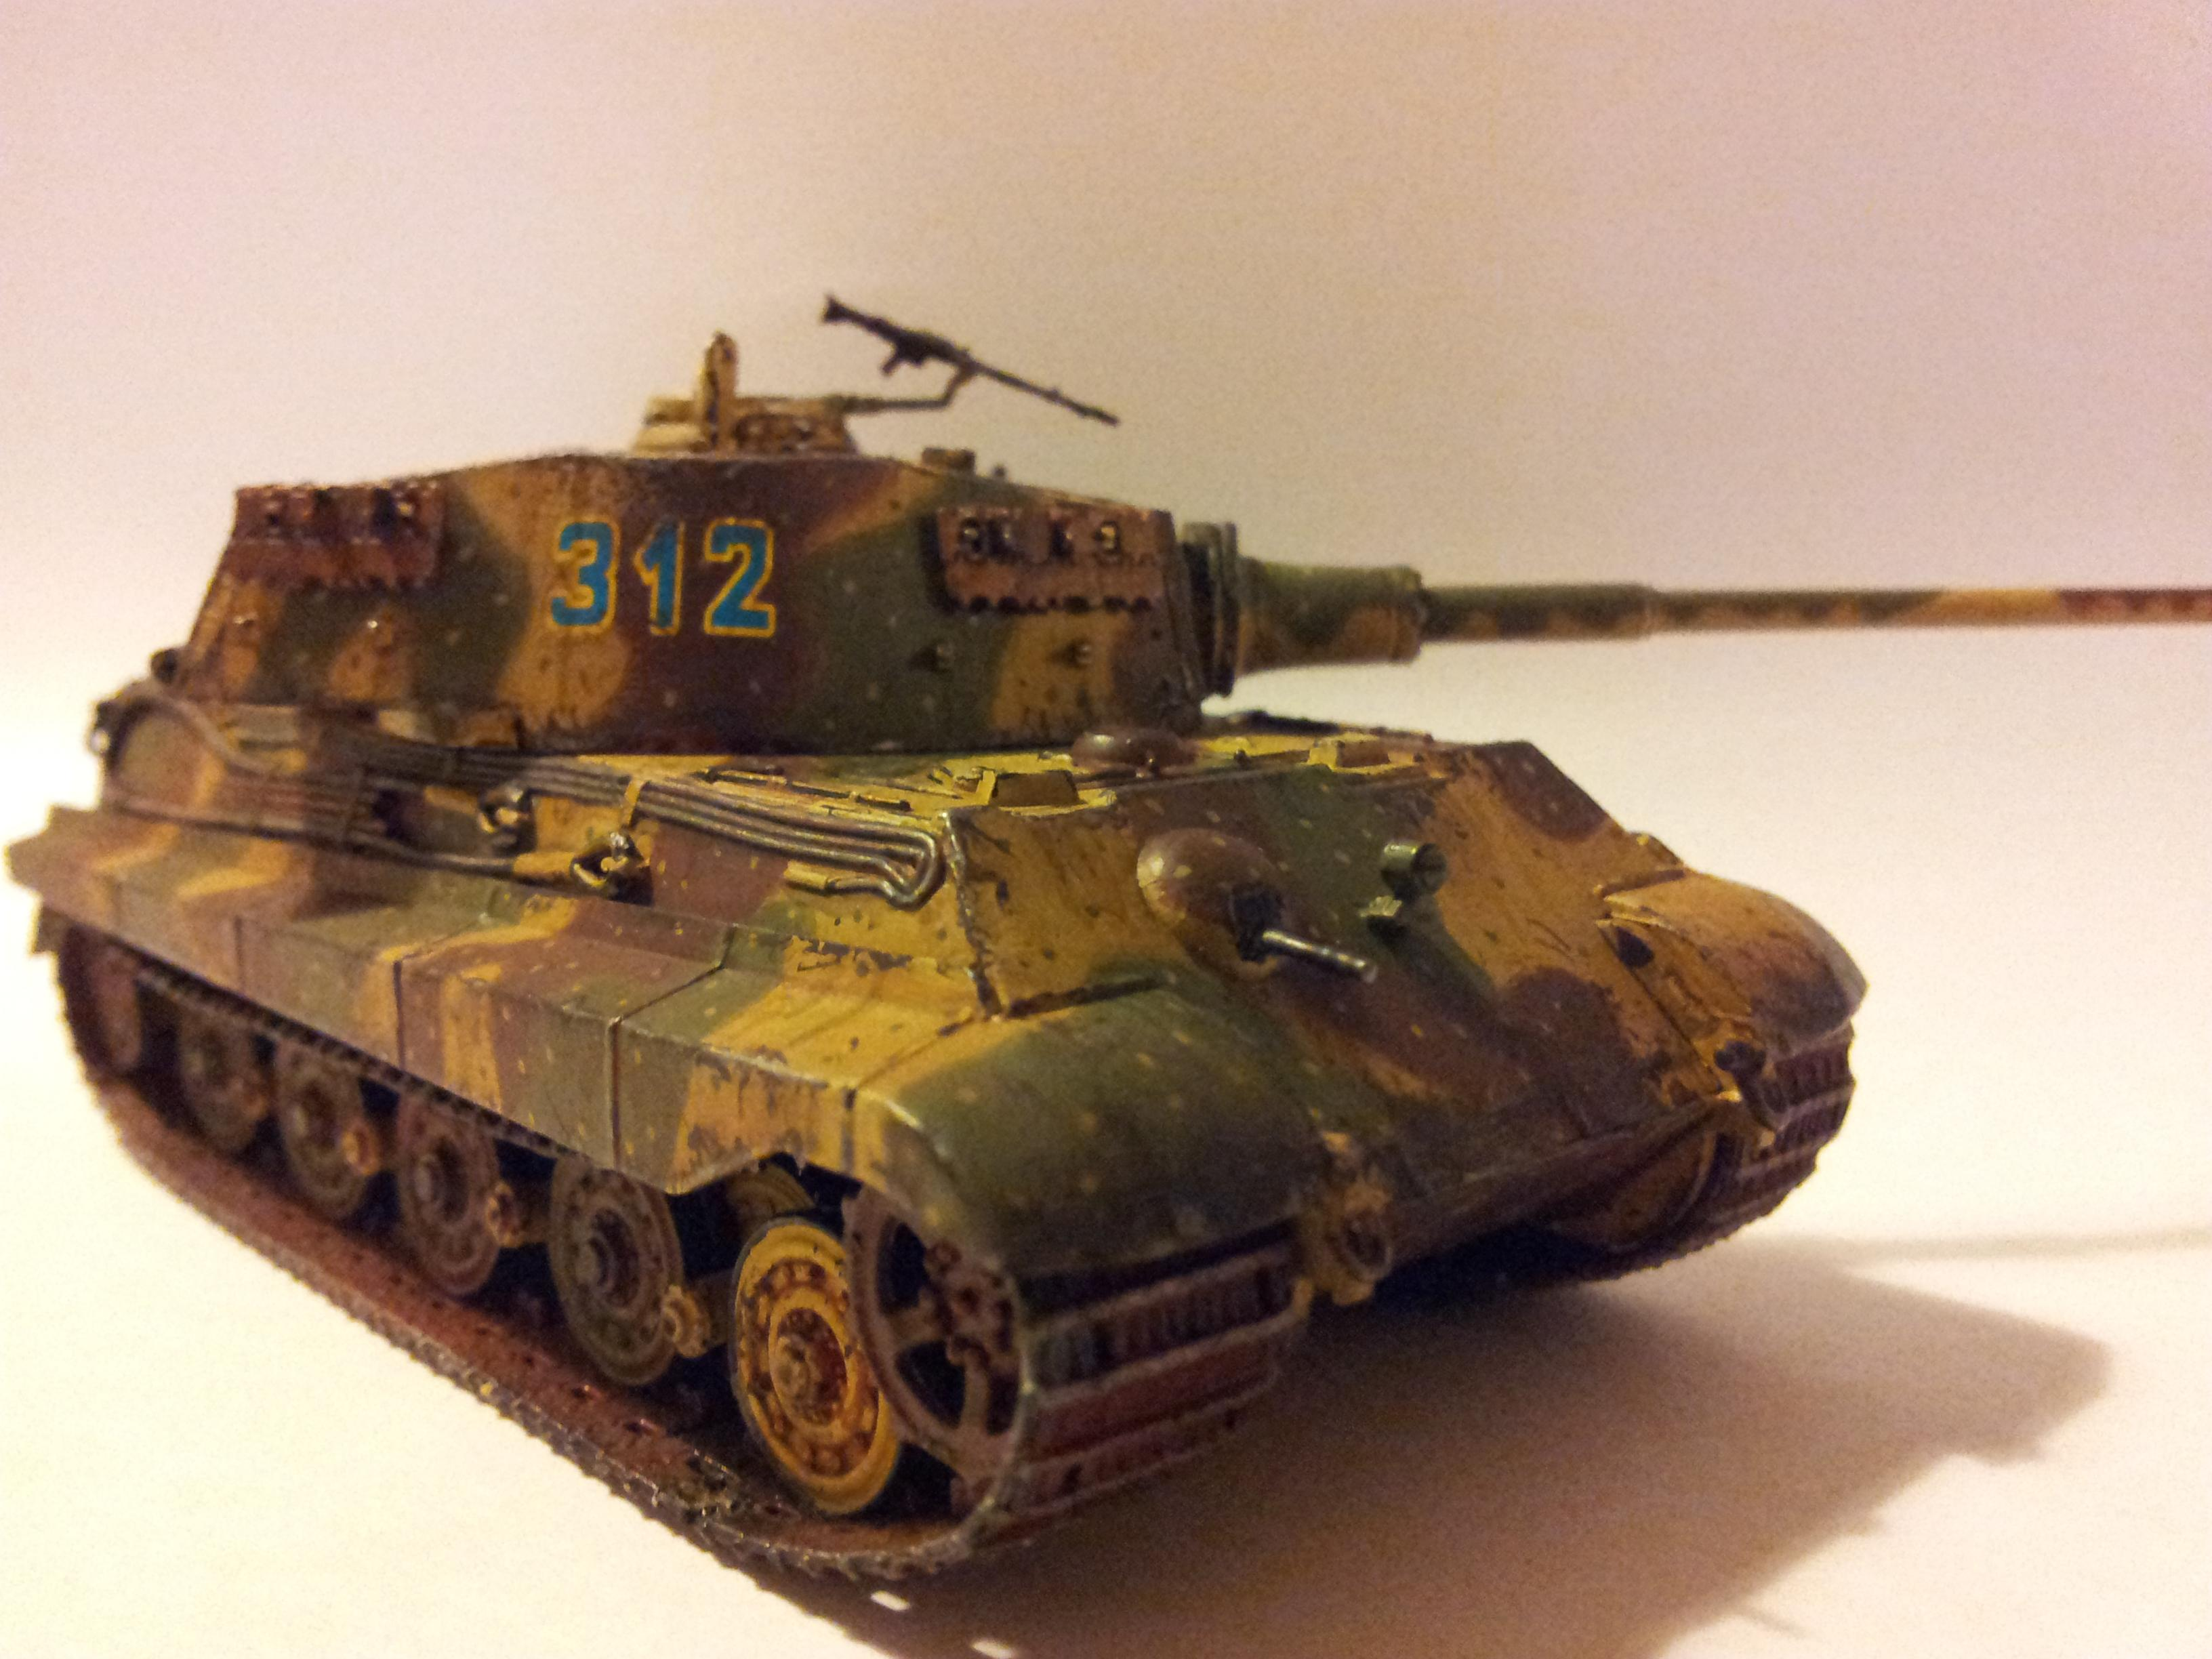 Germans, King Tiger, Panzer, Tank, Tiger, Weathered, World War 2